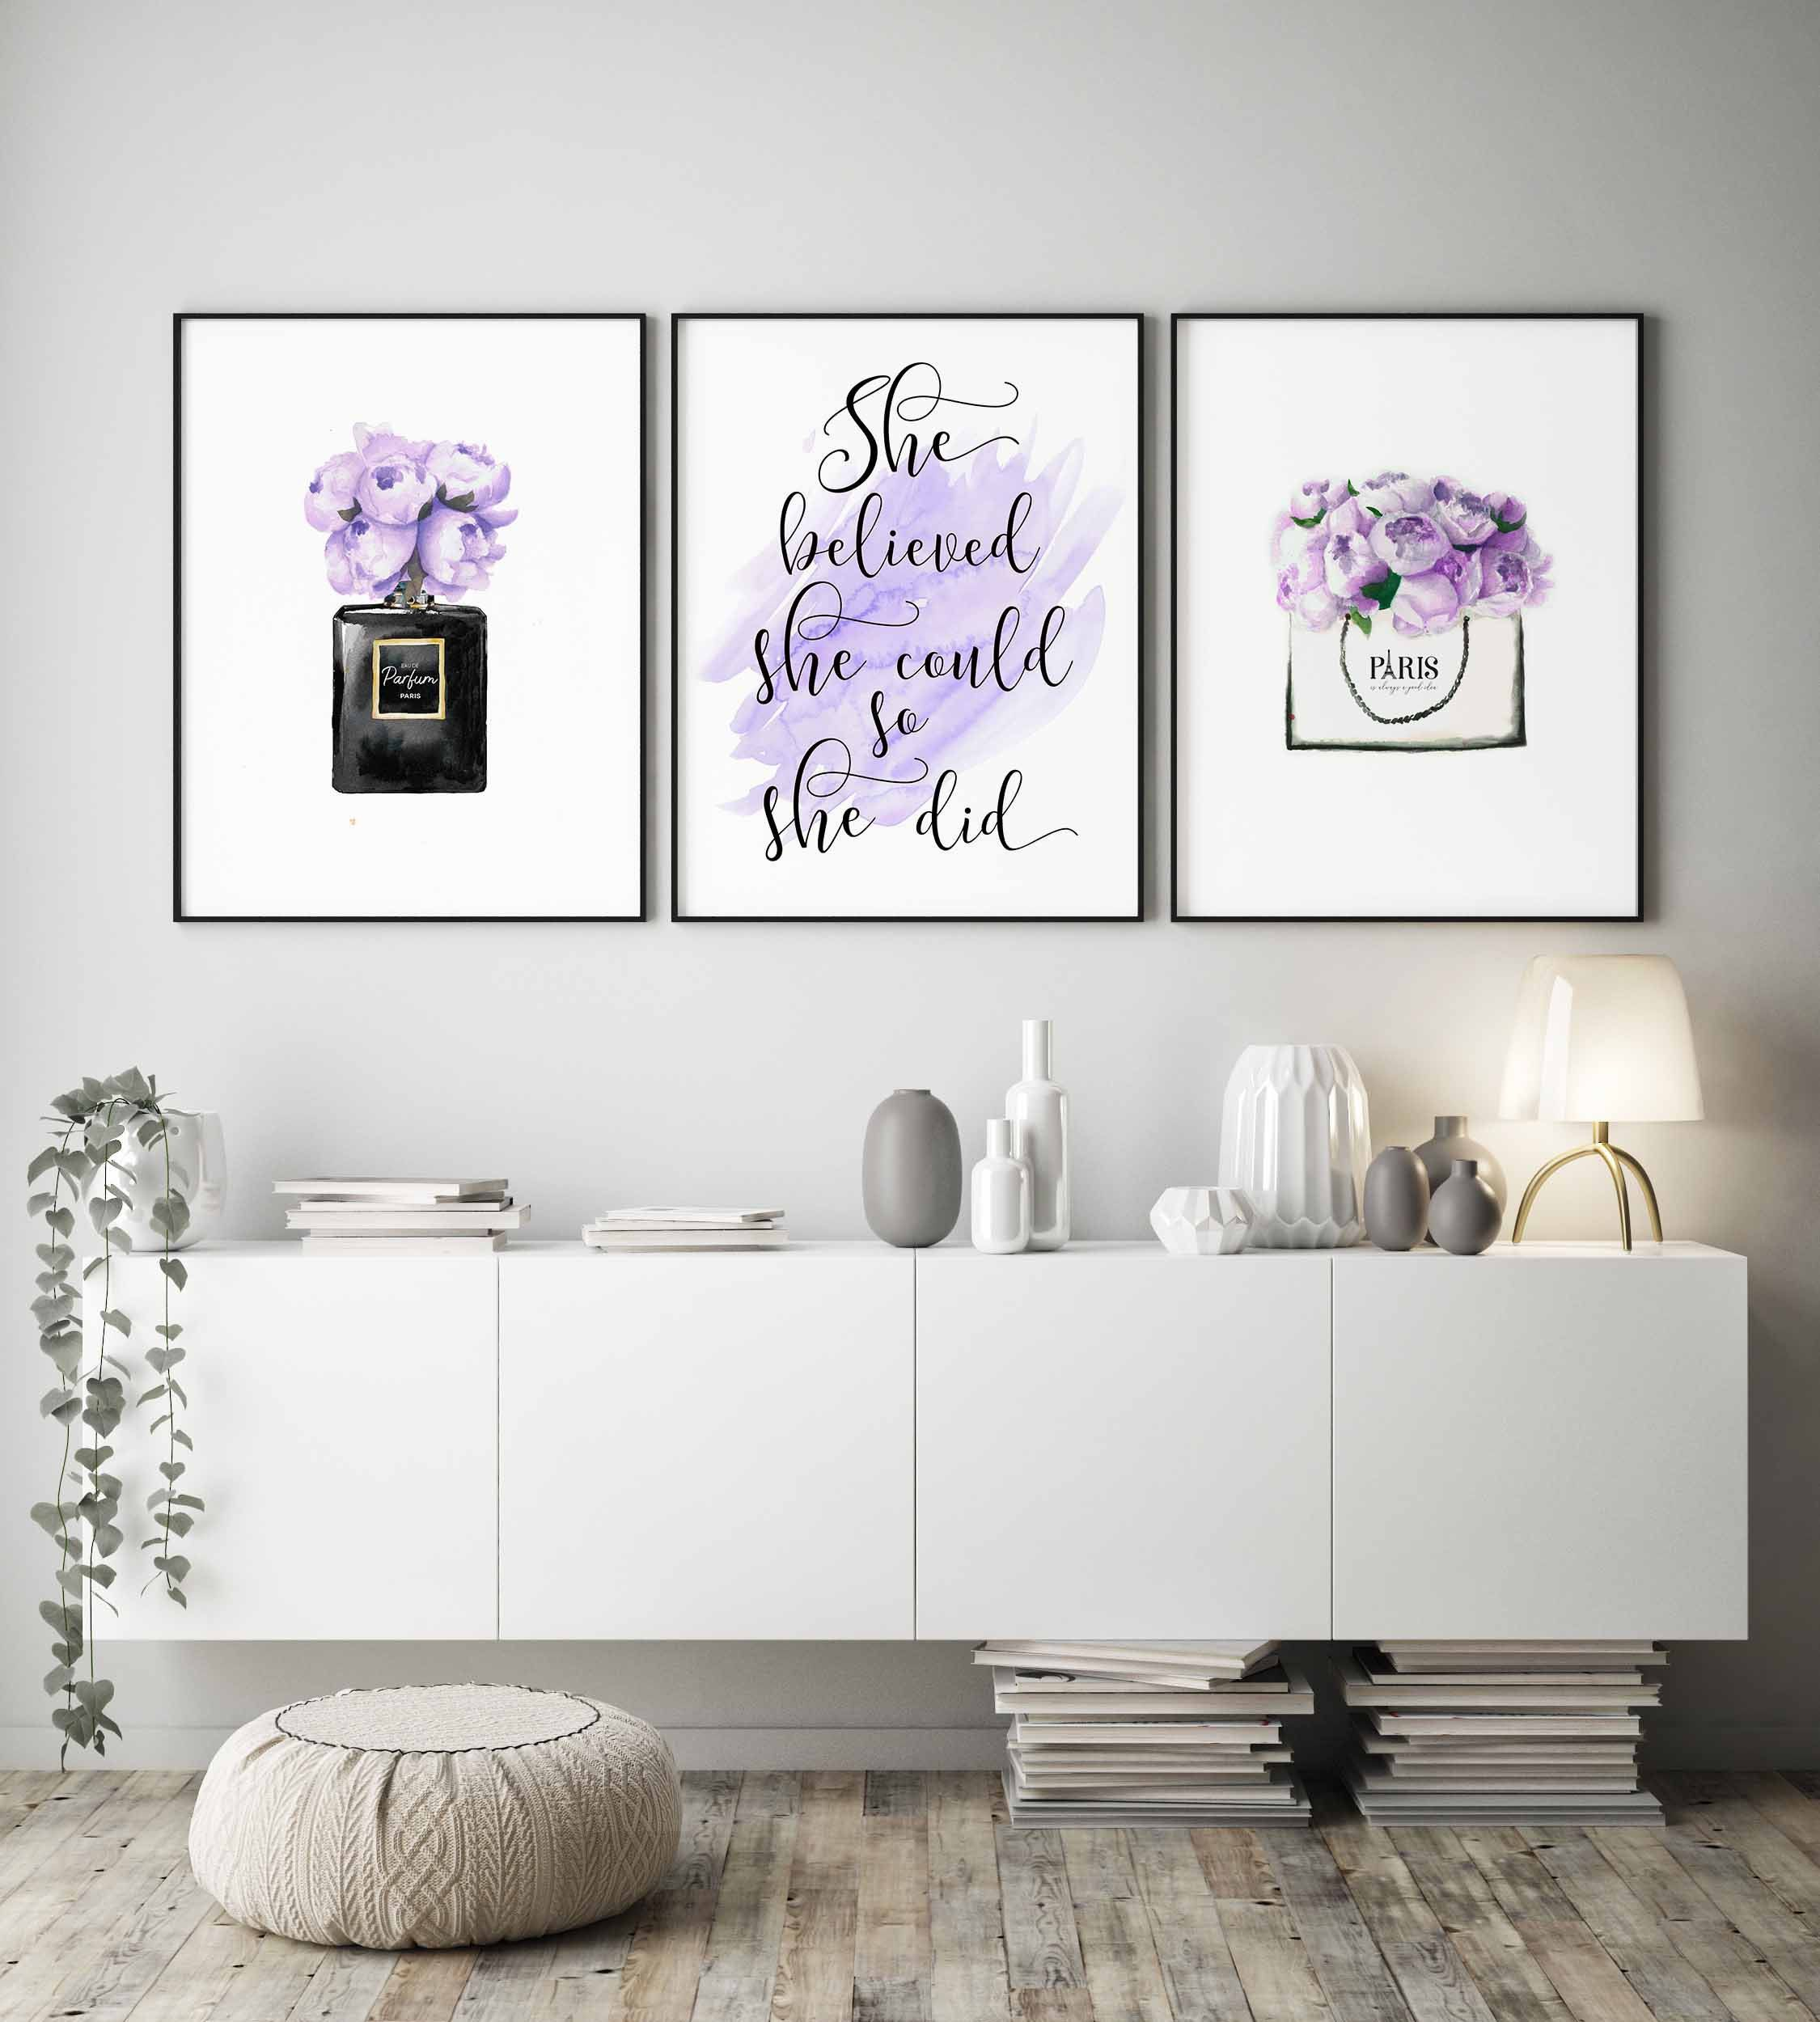 Fashion Wall Artpurple Bedroom Decorpurple Wall Artshe Etsy In 2020 Purple Bedroom Decor Wall Decor Bedroom Girls Bedroom Art